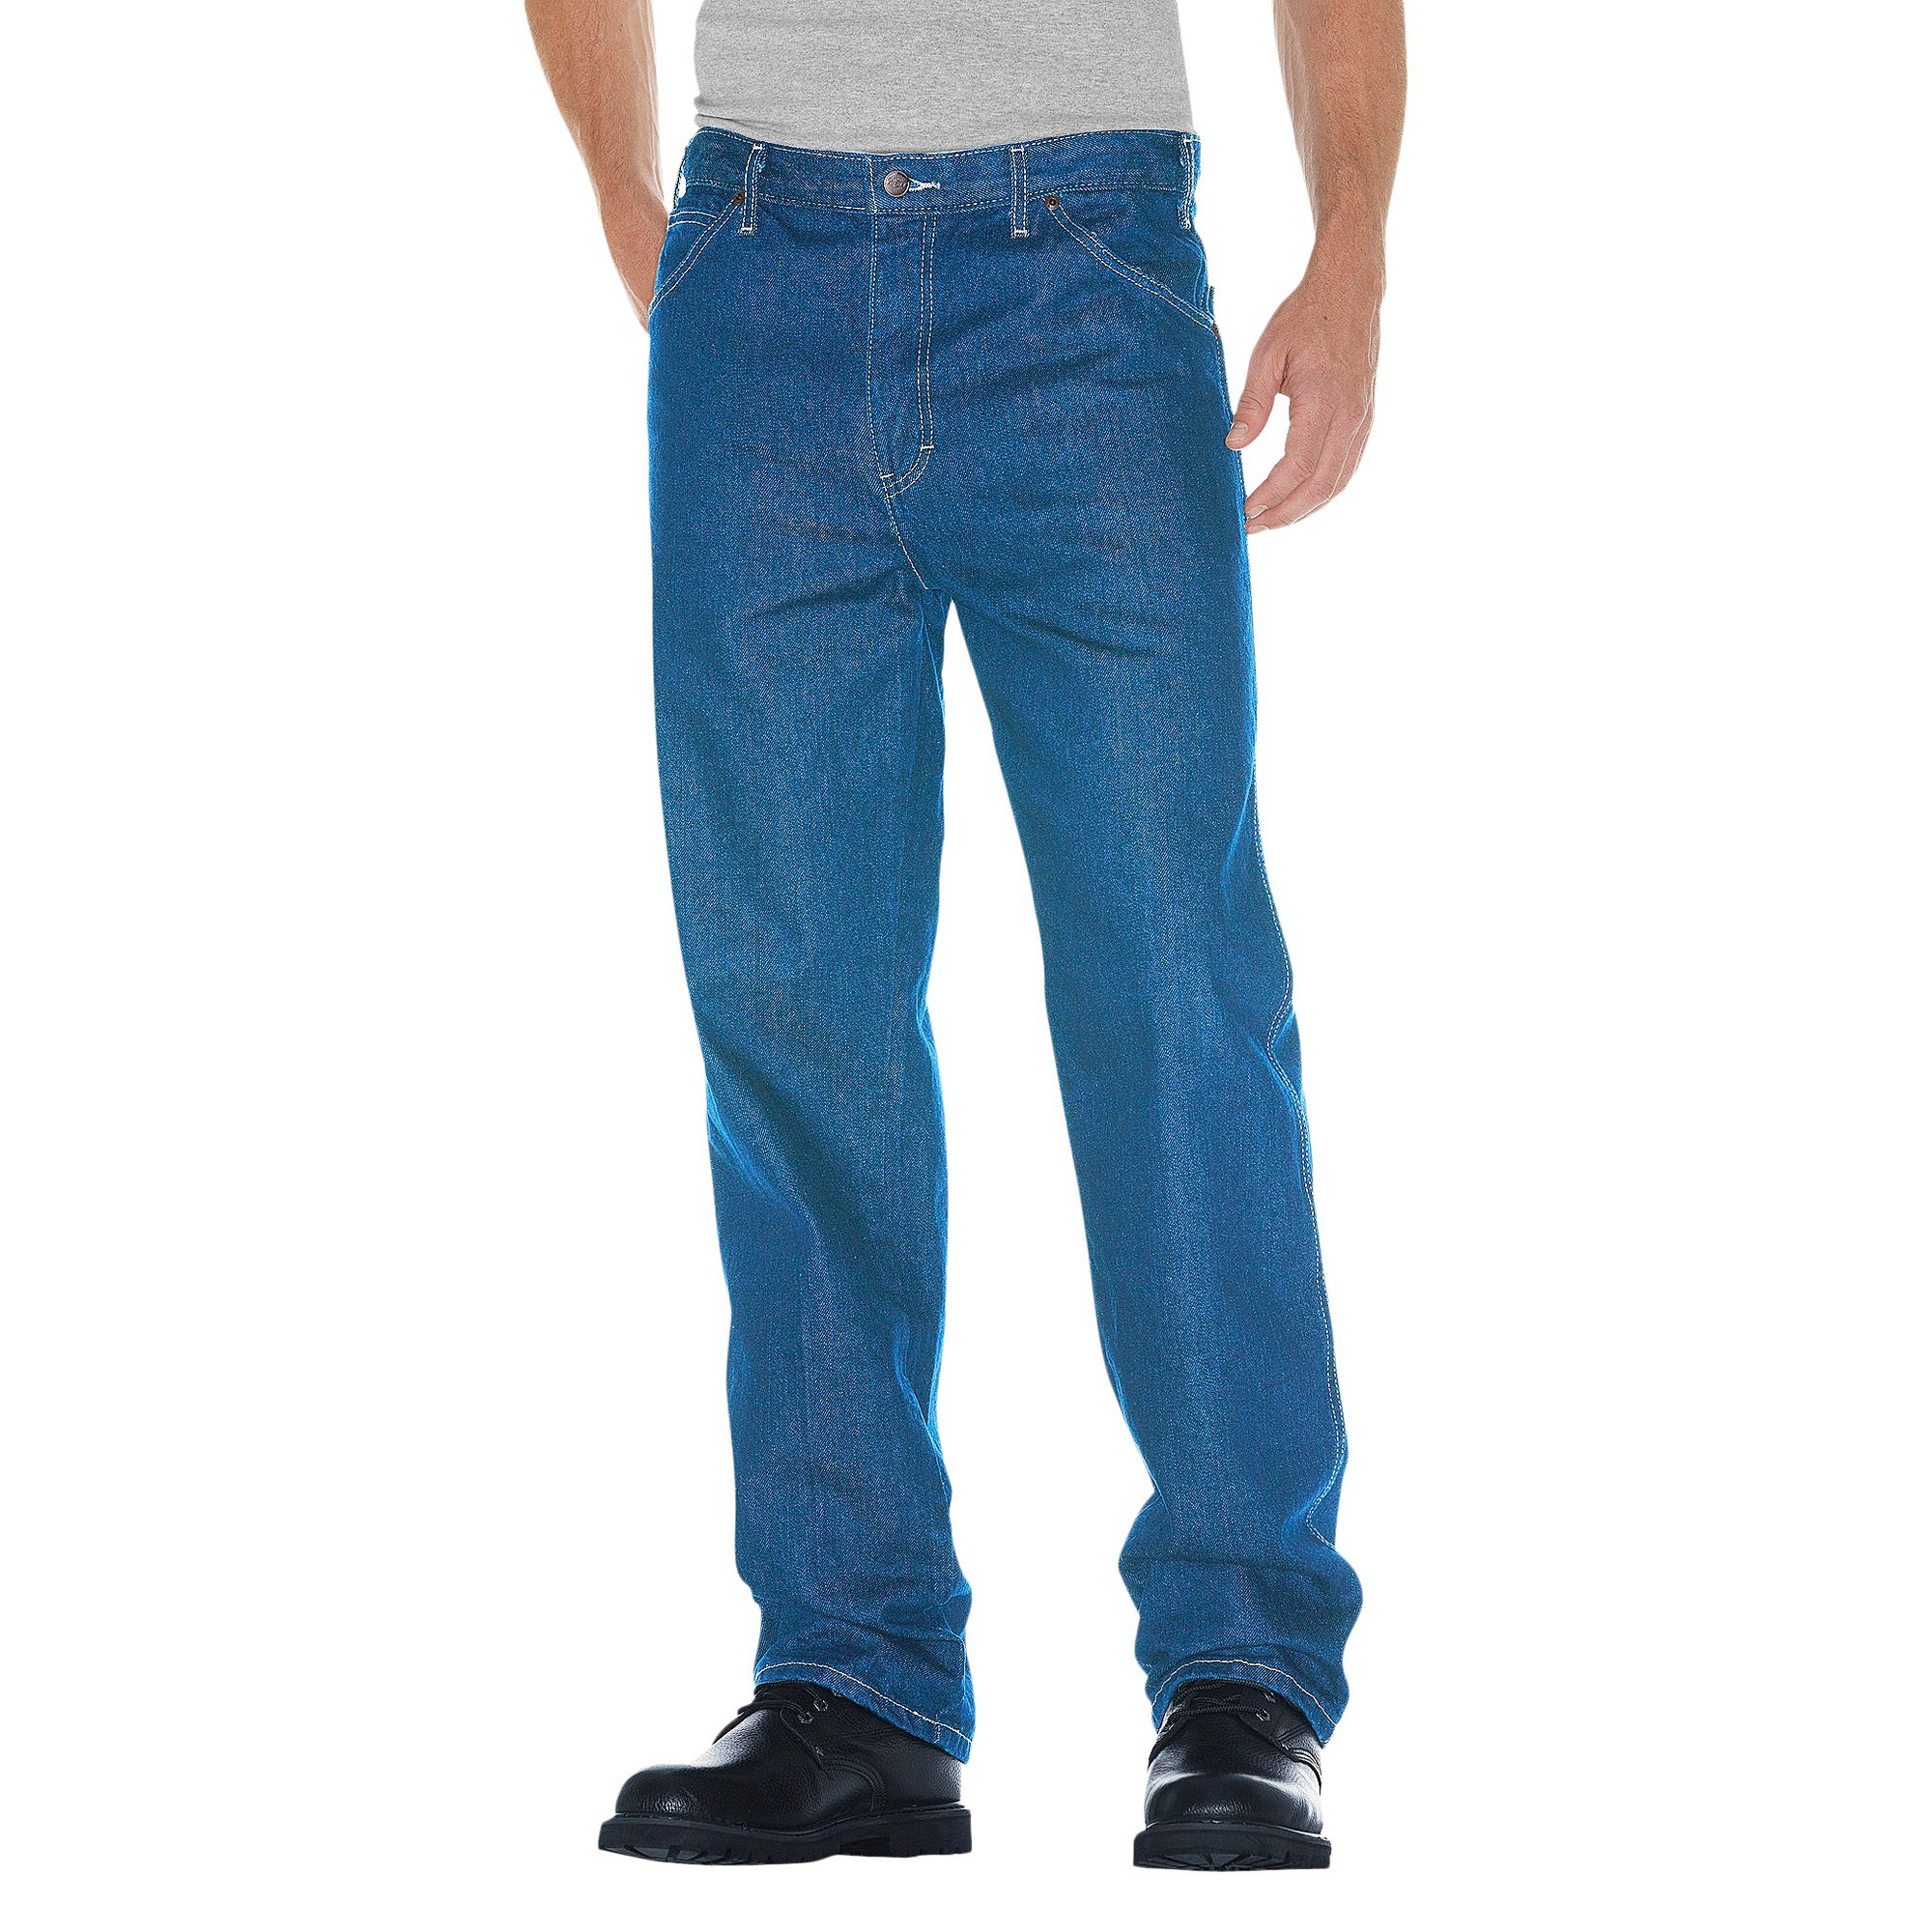 Dickies Men's Tall Relaxed Straight Fit Denim 5-Pocket Jeans Stone Washed 38x36, Men's, Grey Washed